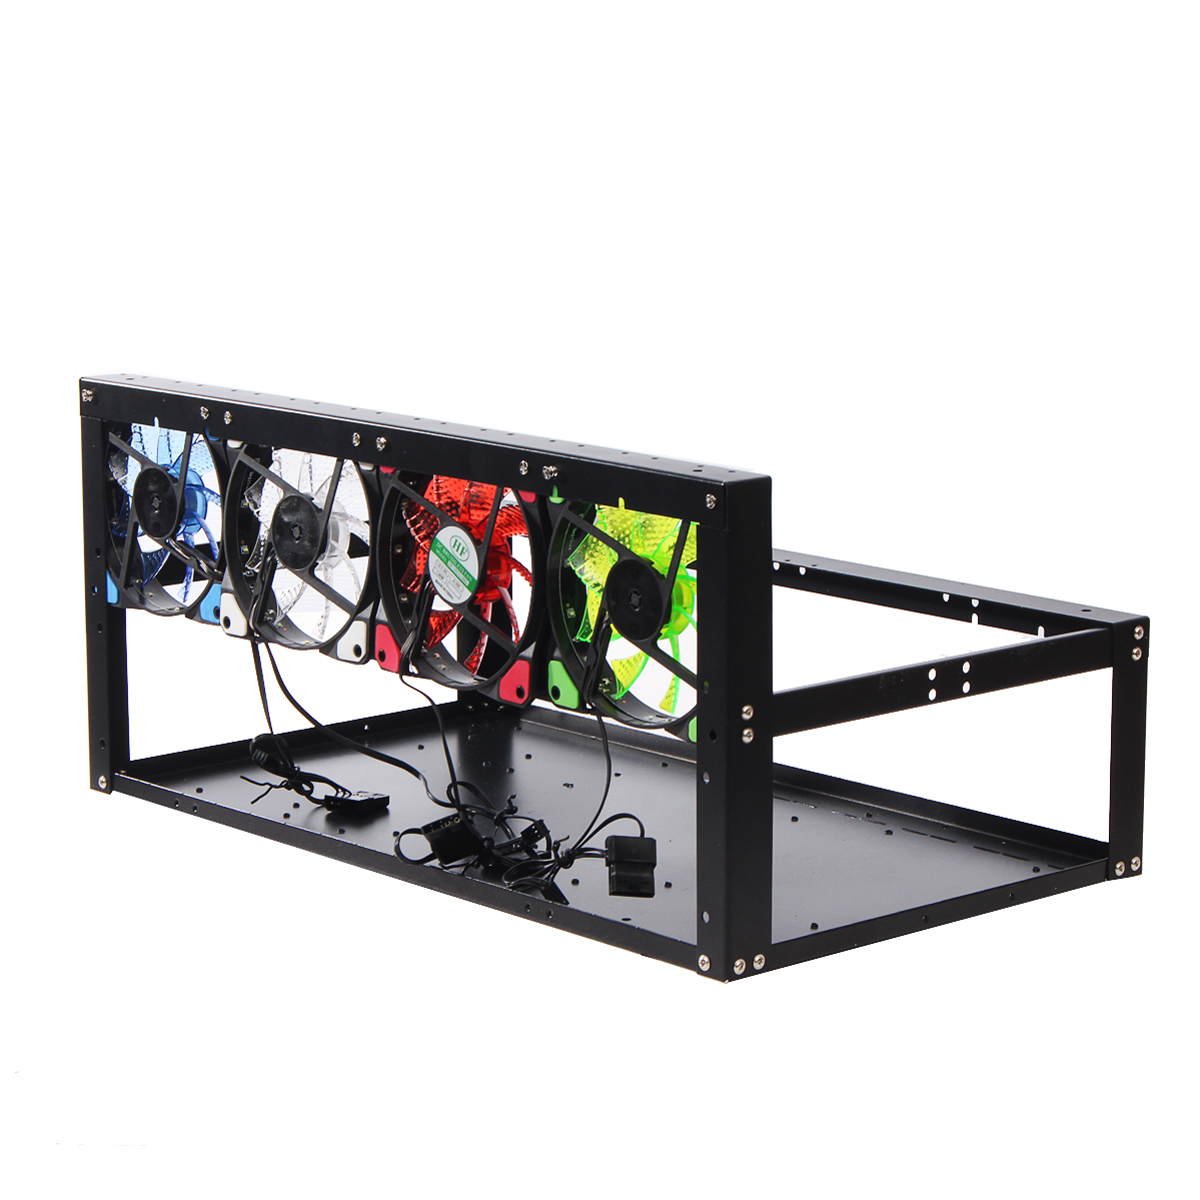 For ETH ZEC/Bitcoin 6GPU Mining Rig Case Open Air Mining Frame + 4 Color LED Fan